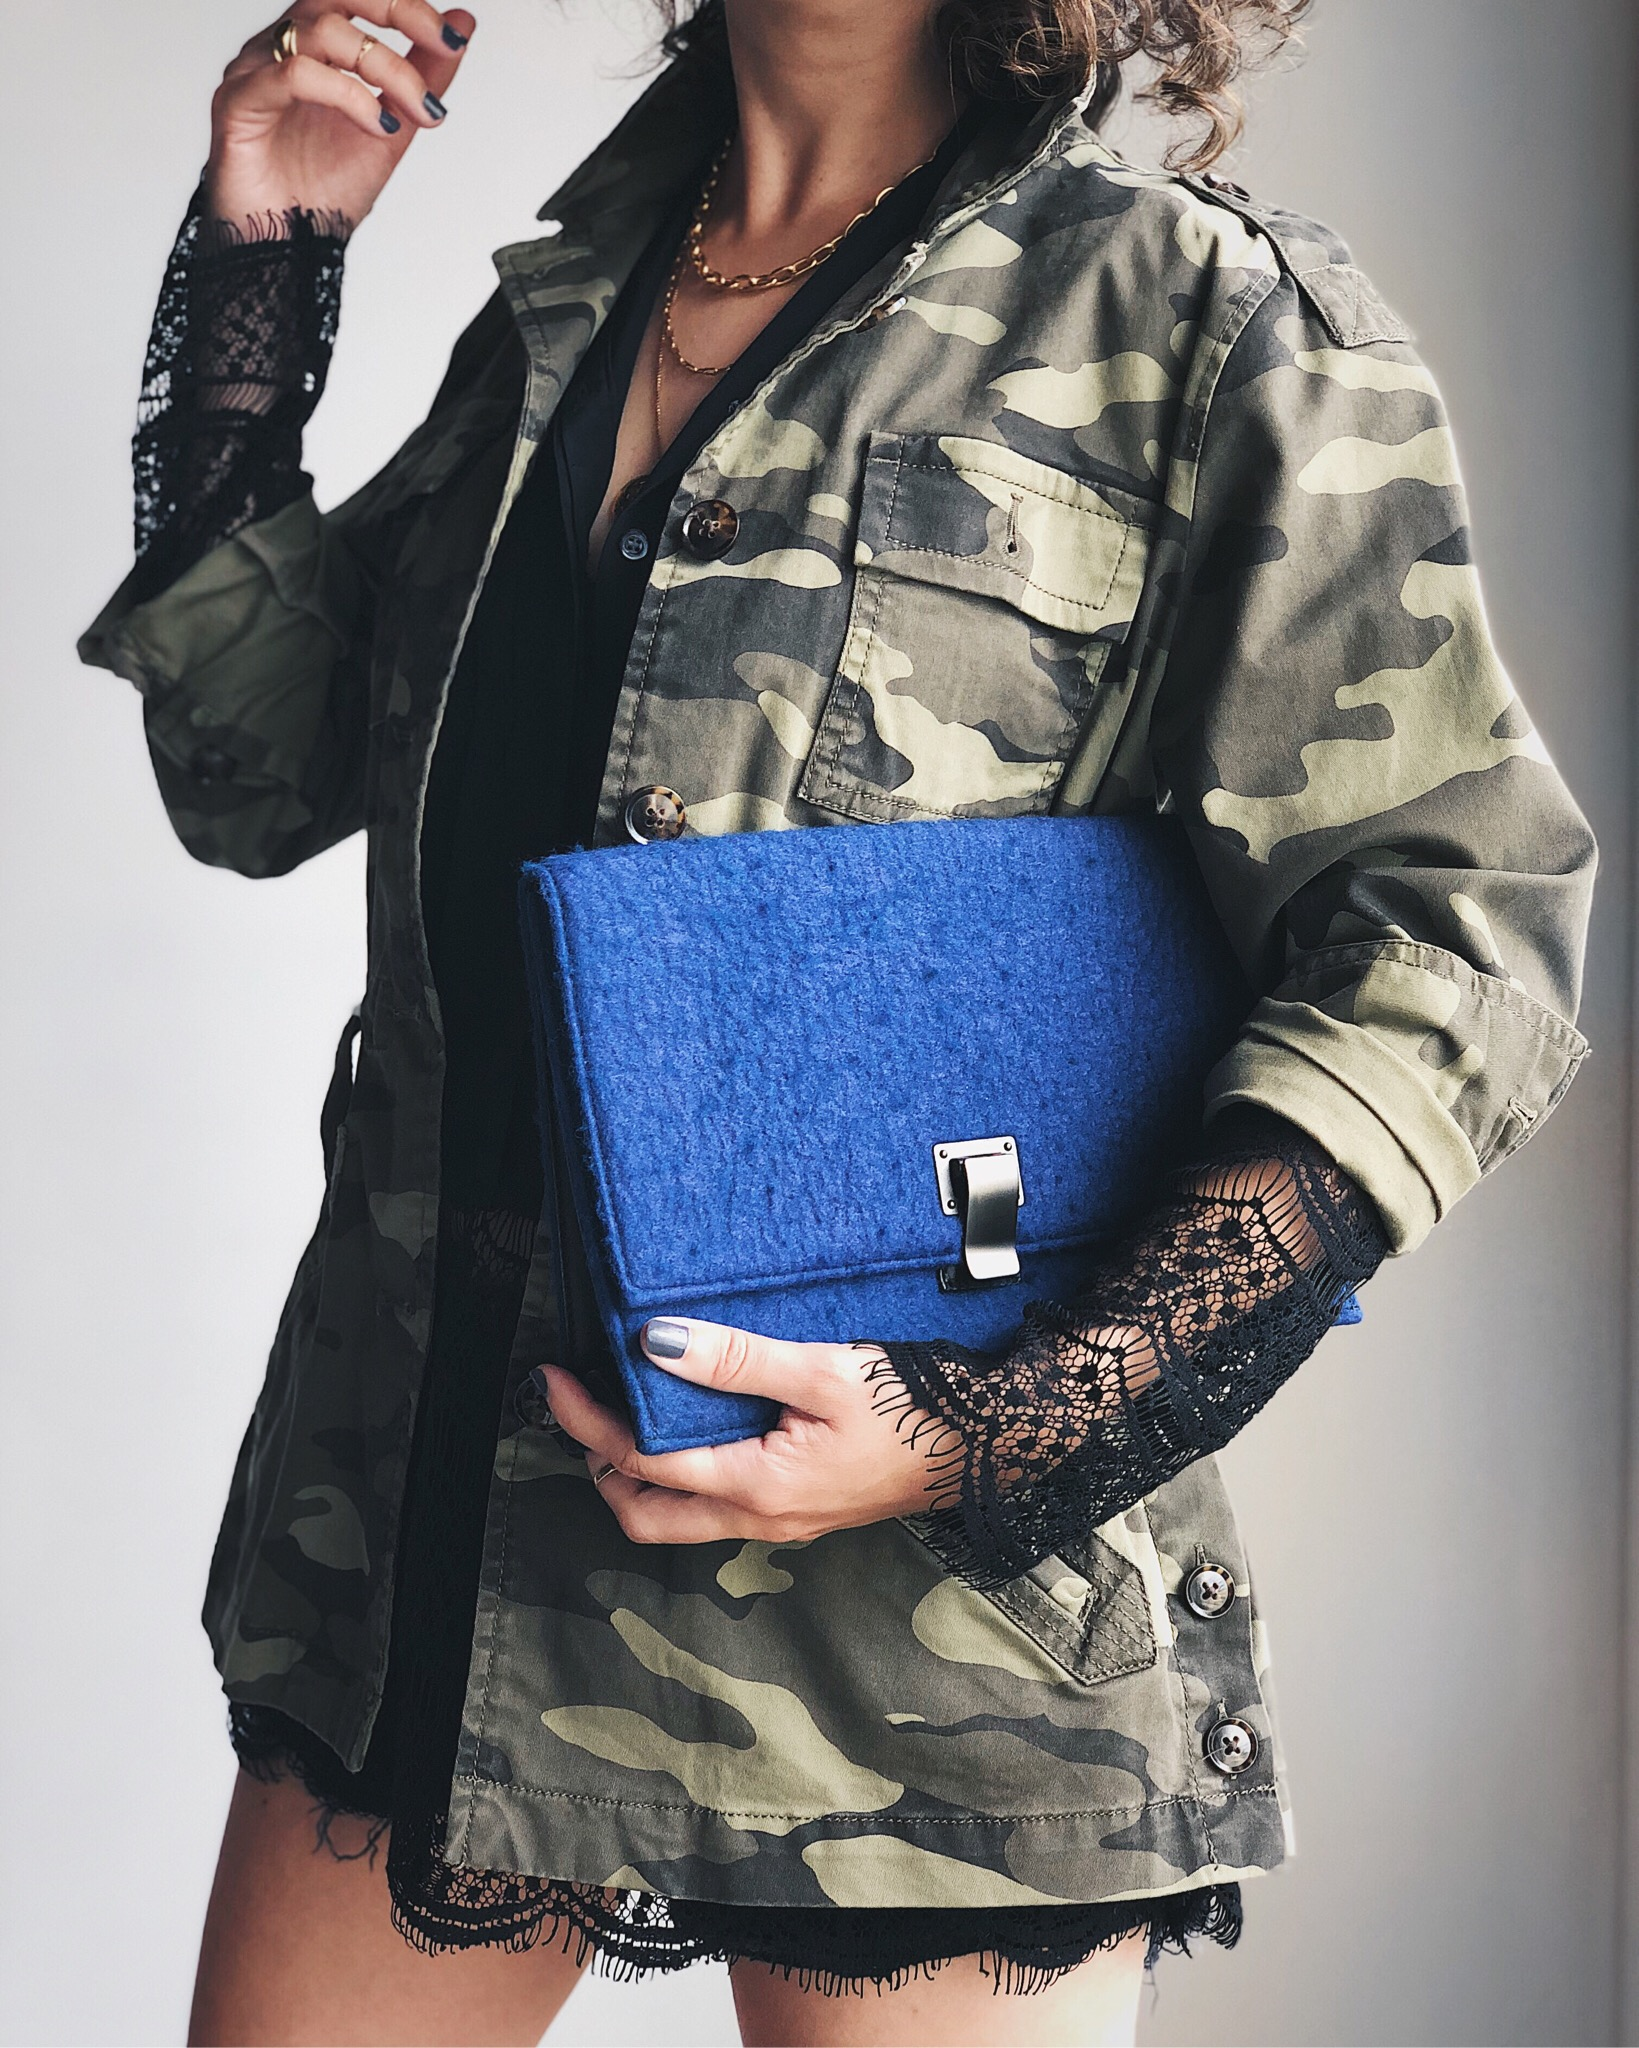 outfit-idea-camo-jacket-lace-blouse